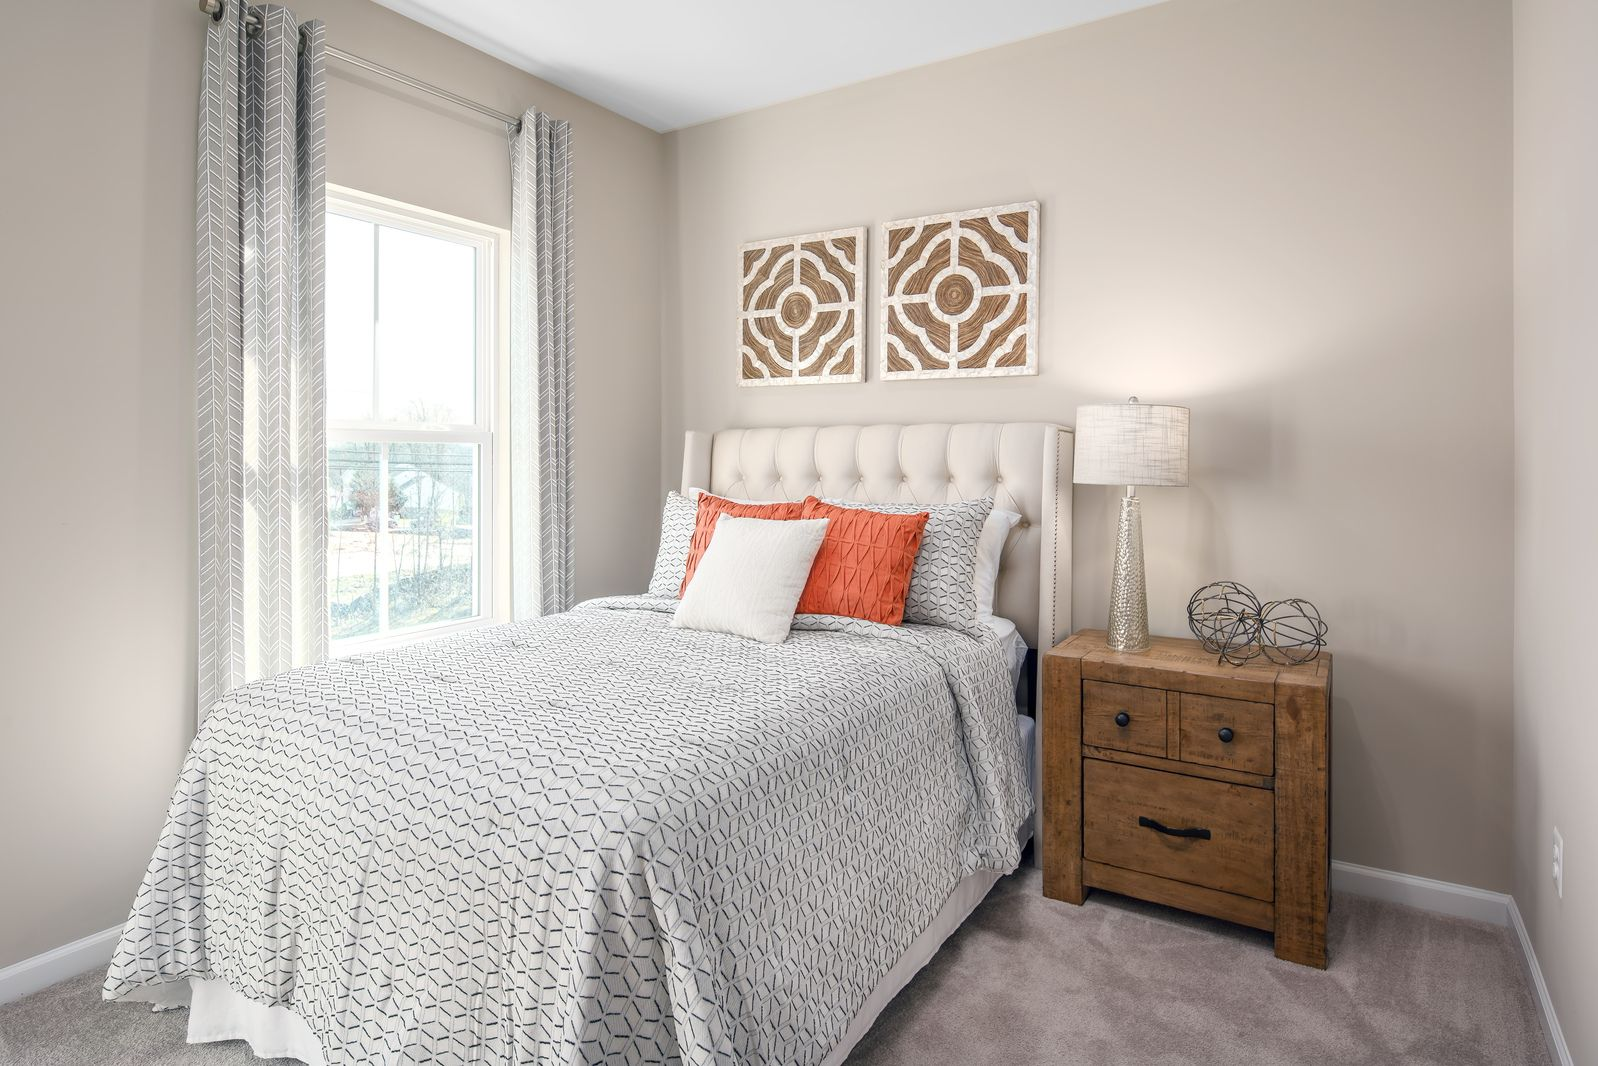 Bedroom featured in the Clarendon 3 Story By Ryan Homes in Baltimore, MD